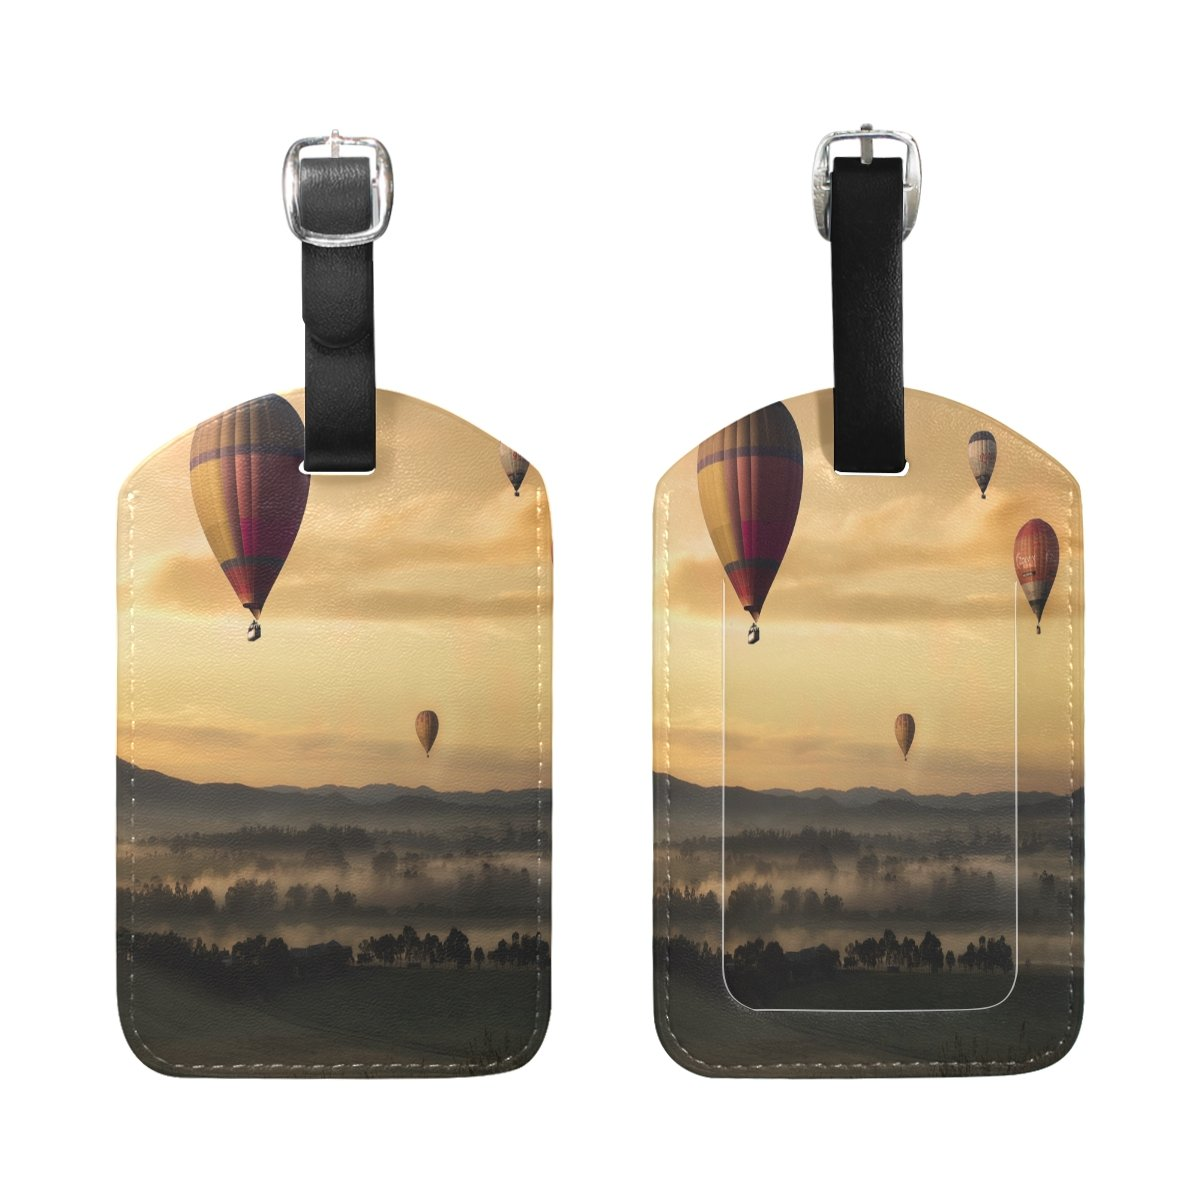 1Pcs Saobao Travel Luggage Tag Hot Are Balloon PU Leather Baggage Suitcase Travel ID Bag Tag